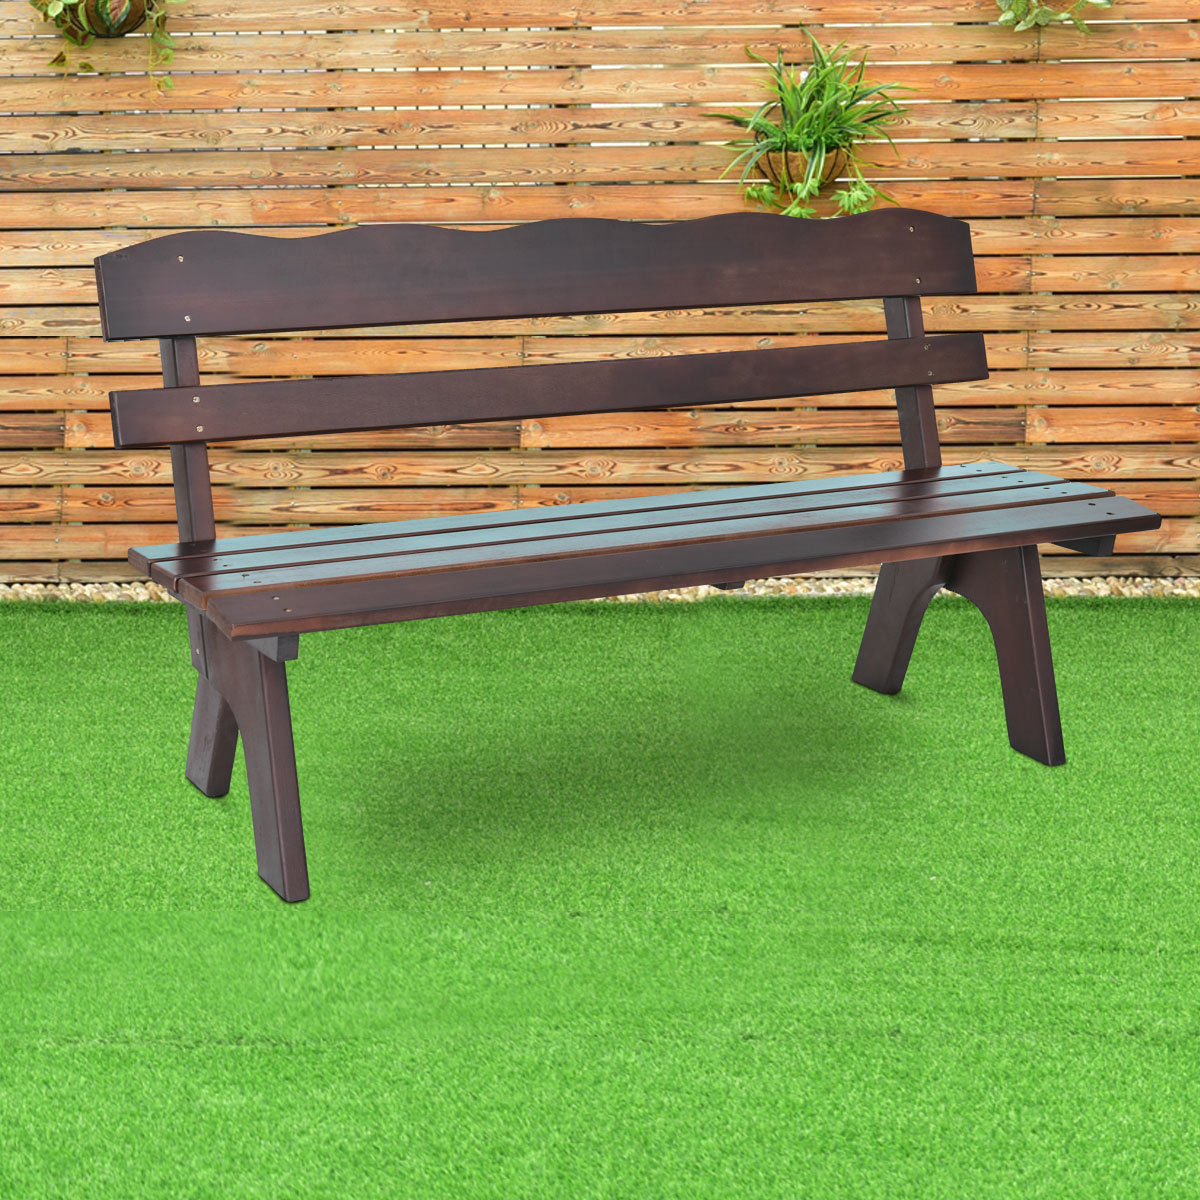 5Ft 3 Seats Outdoor Garden Bench Chair Wood Frame Yard Furniture Brown